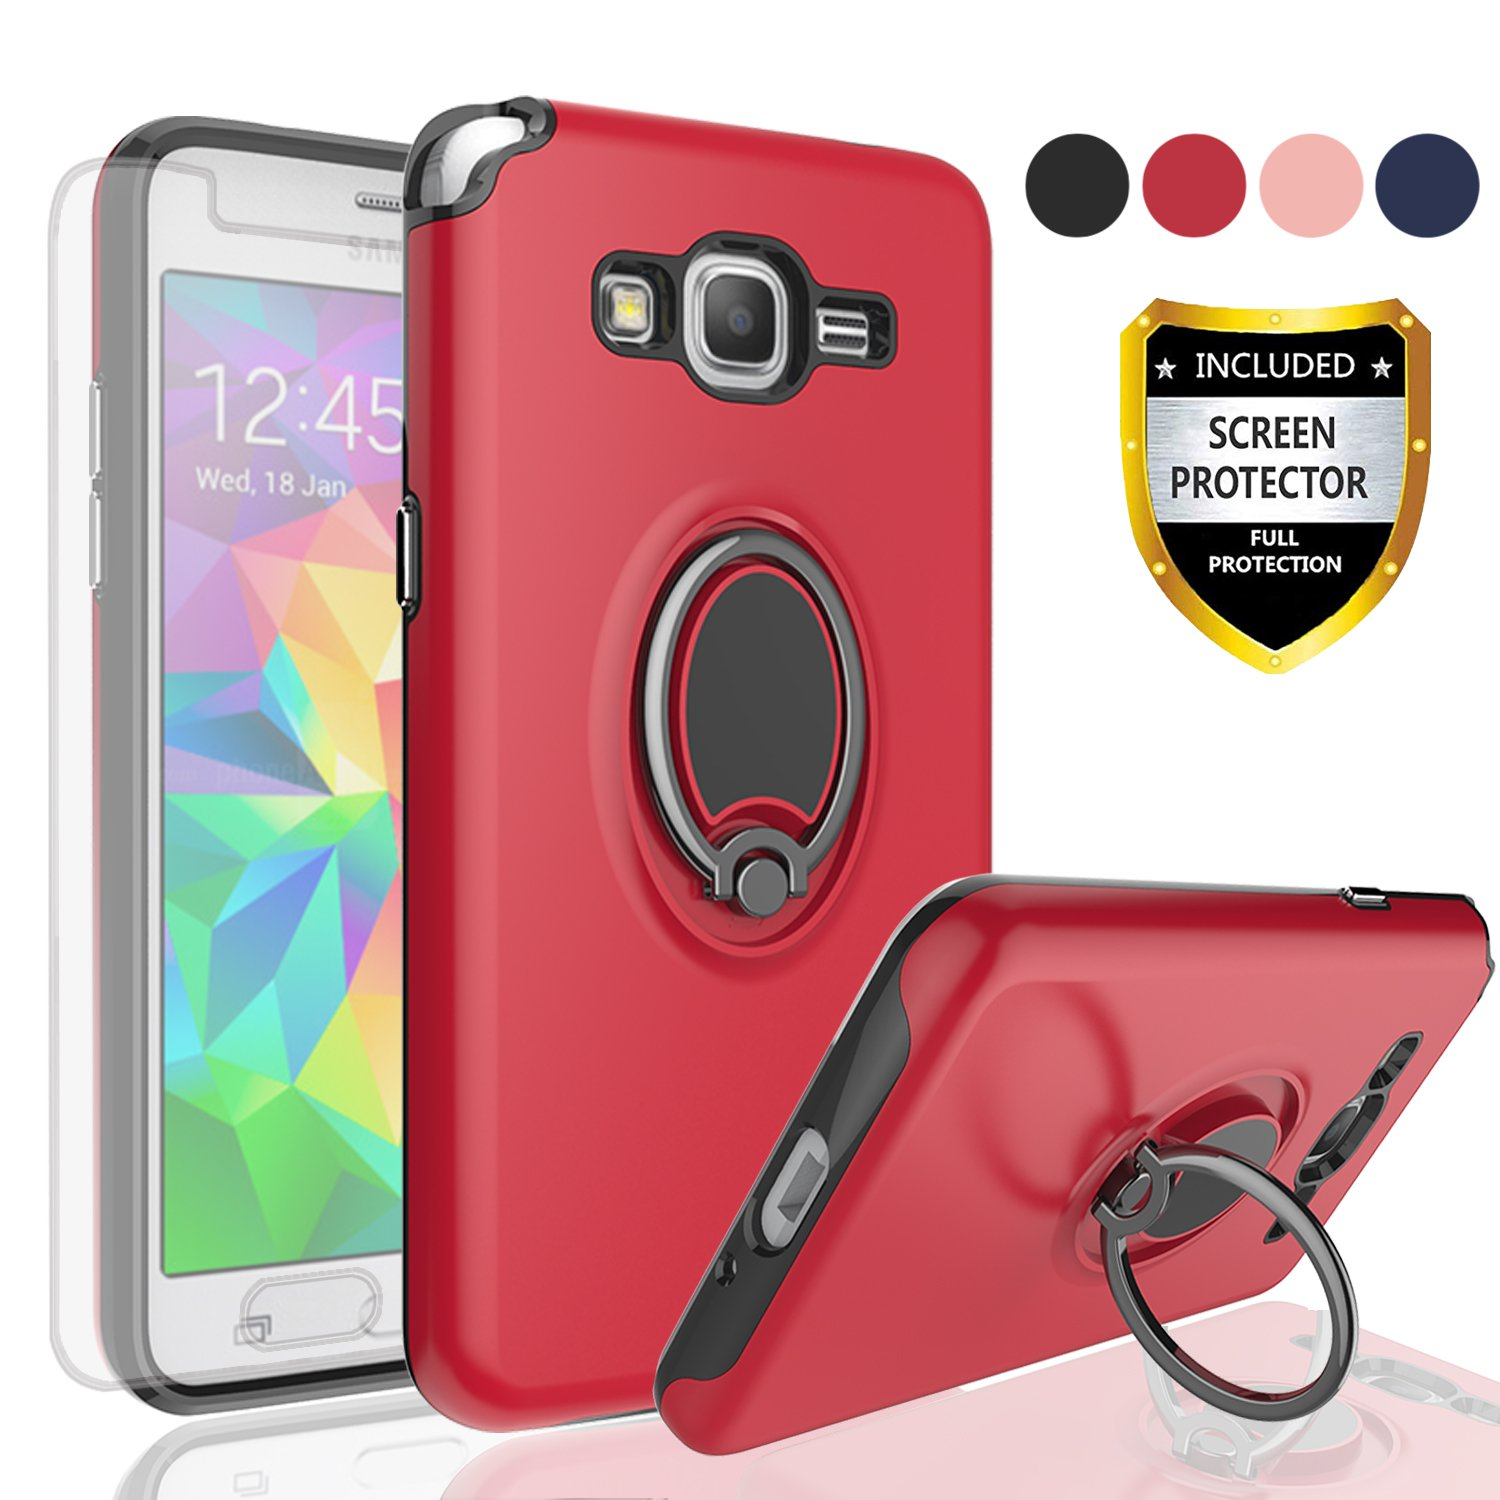 Samsung Galaxy Grand Prime CaseGalaxy J2 Case With HD Screen ProtectorAngxyy Rotating Ring Holder Dual Layer Shock Bumper Cover For